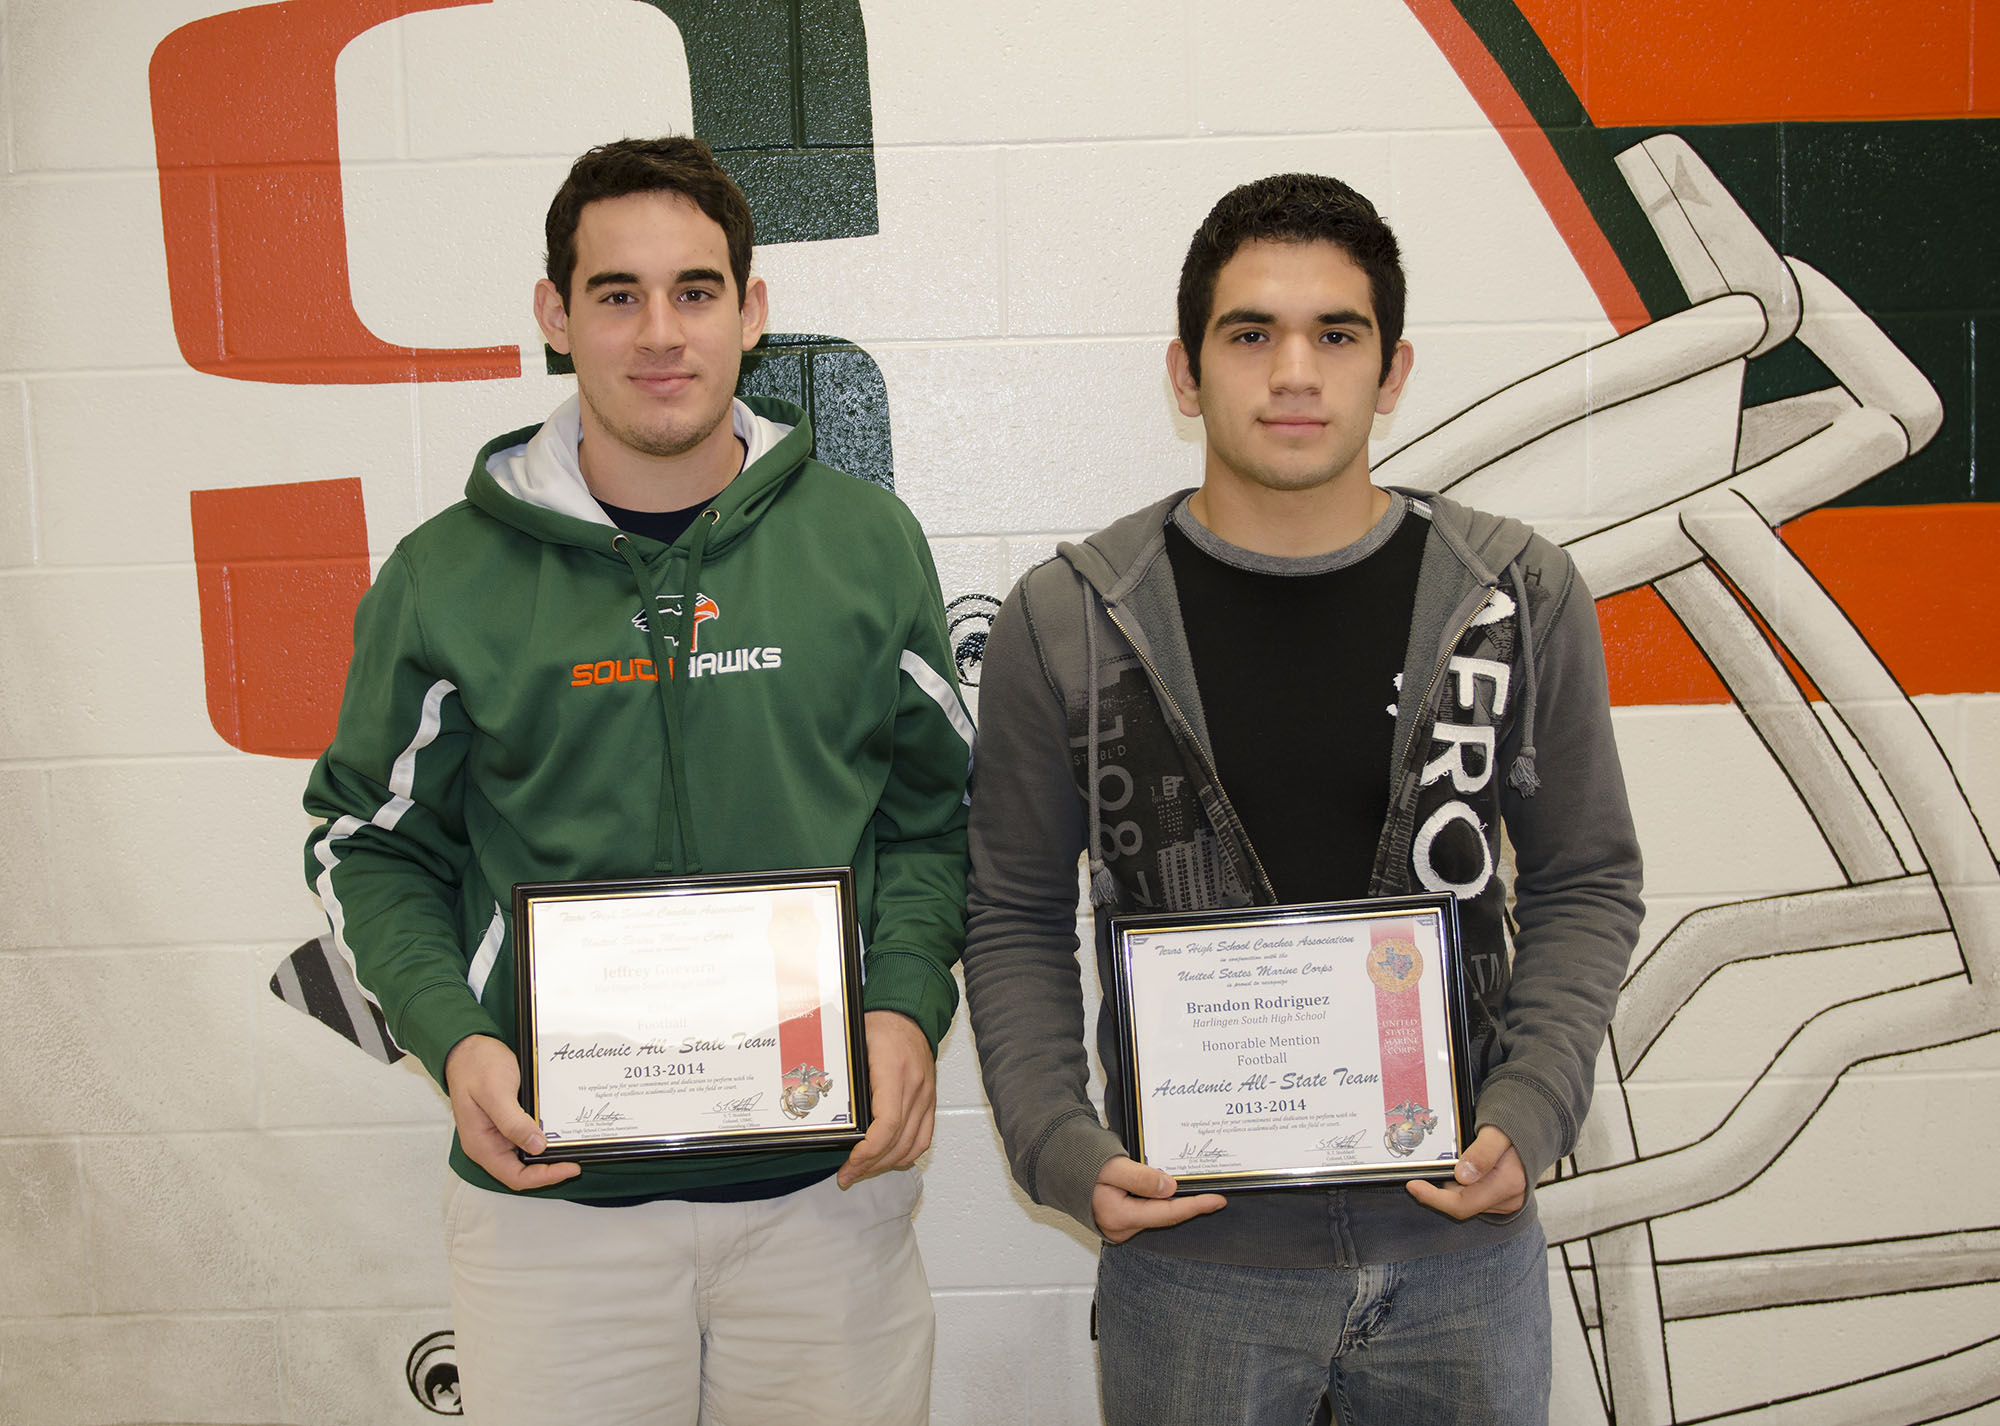 HHSS, HHS football players named to 2013-2014 Academic All-State Team